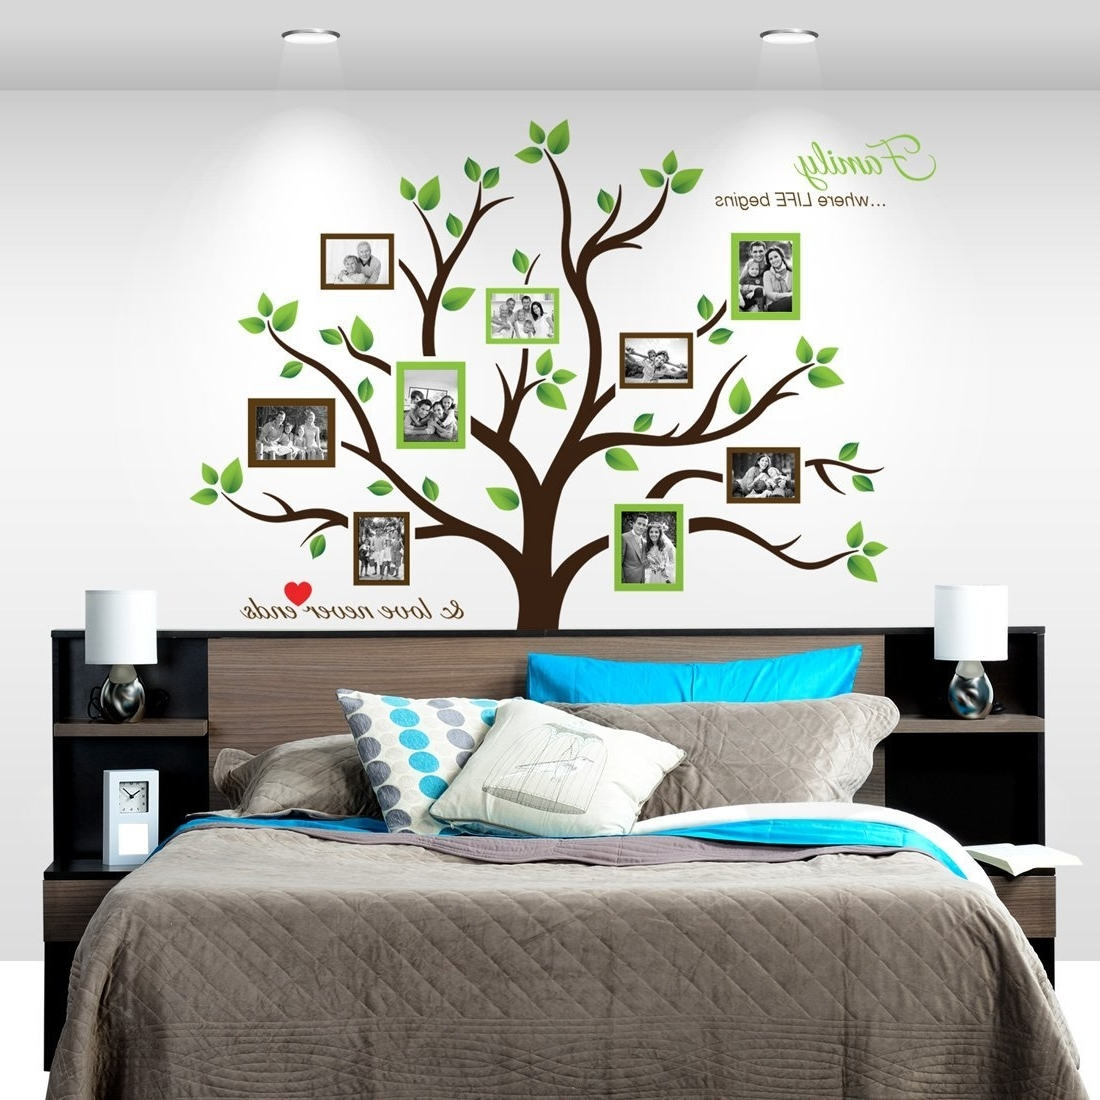 Tree Of Life Wall Art Stickers With Regard To Fashionable Amazon: Timber Artbox Large Family Tree Photo Frames Wall (View 11 of 15)